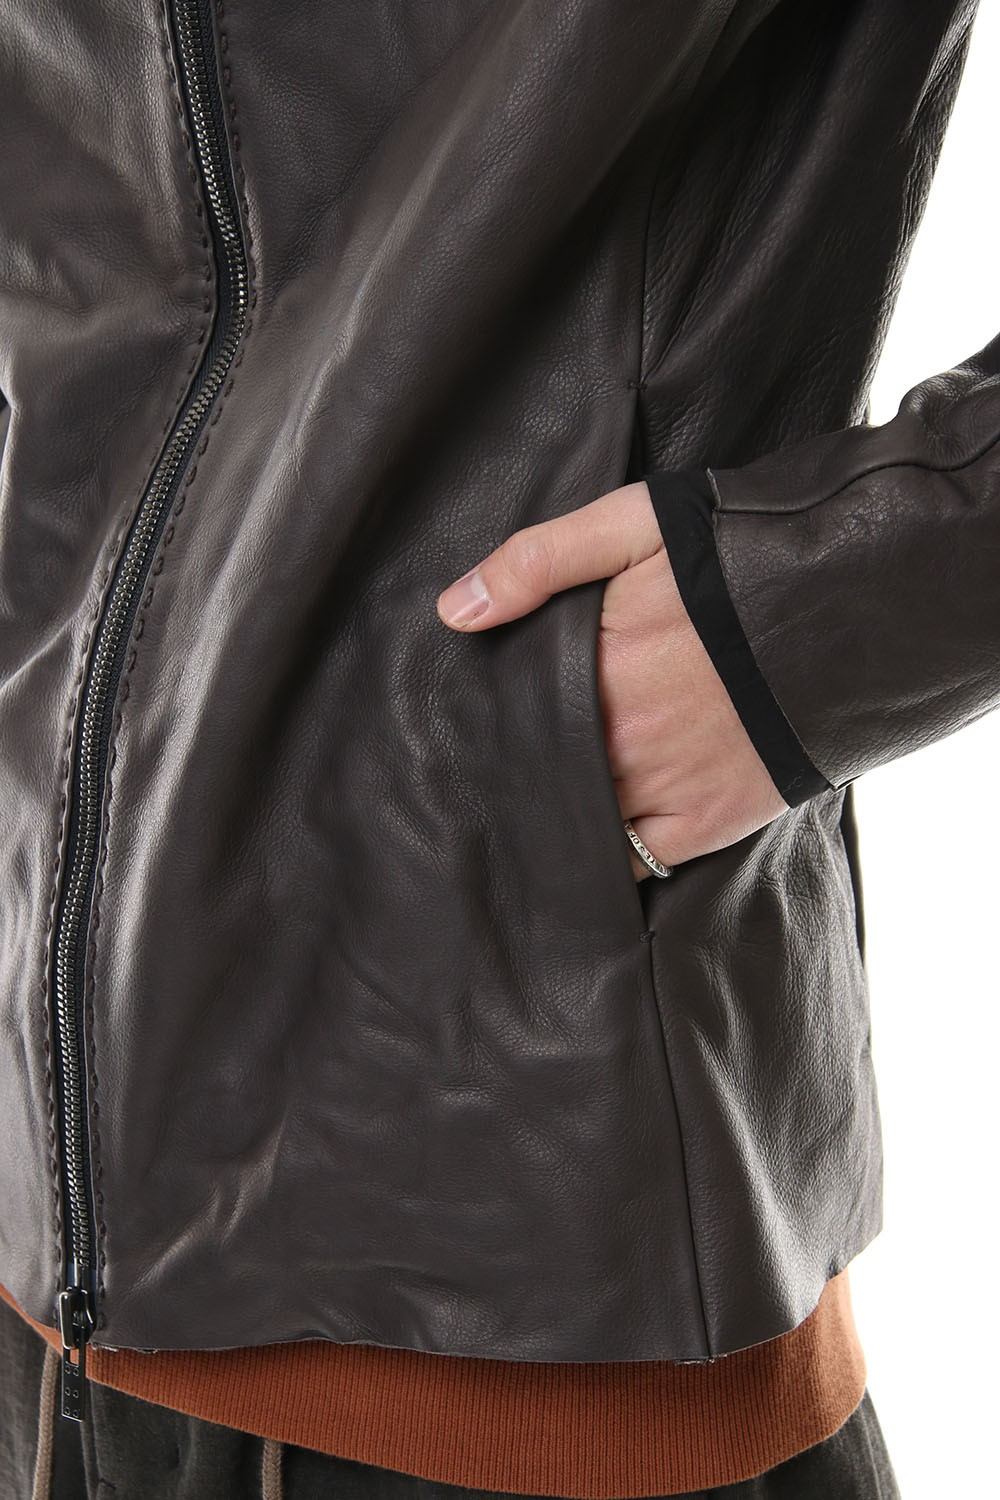 Leather jacket cow leather - Charcoal